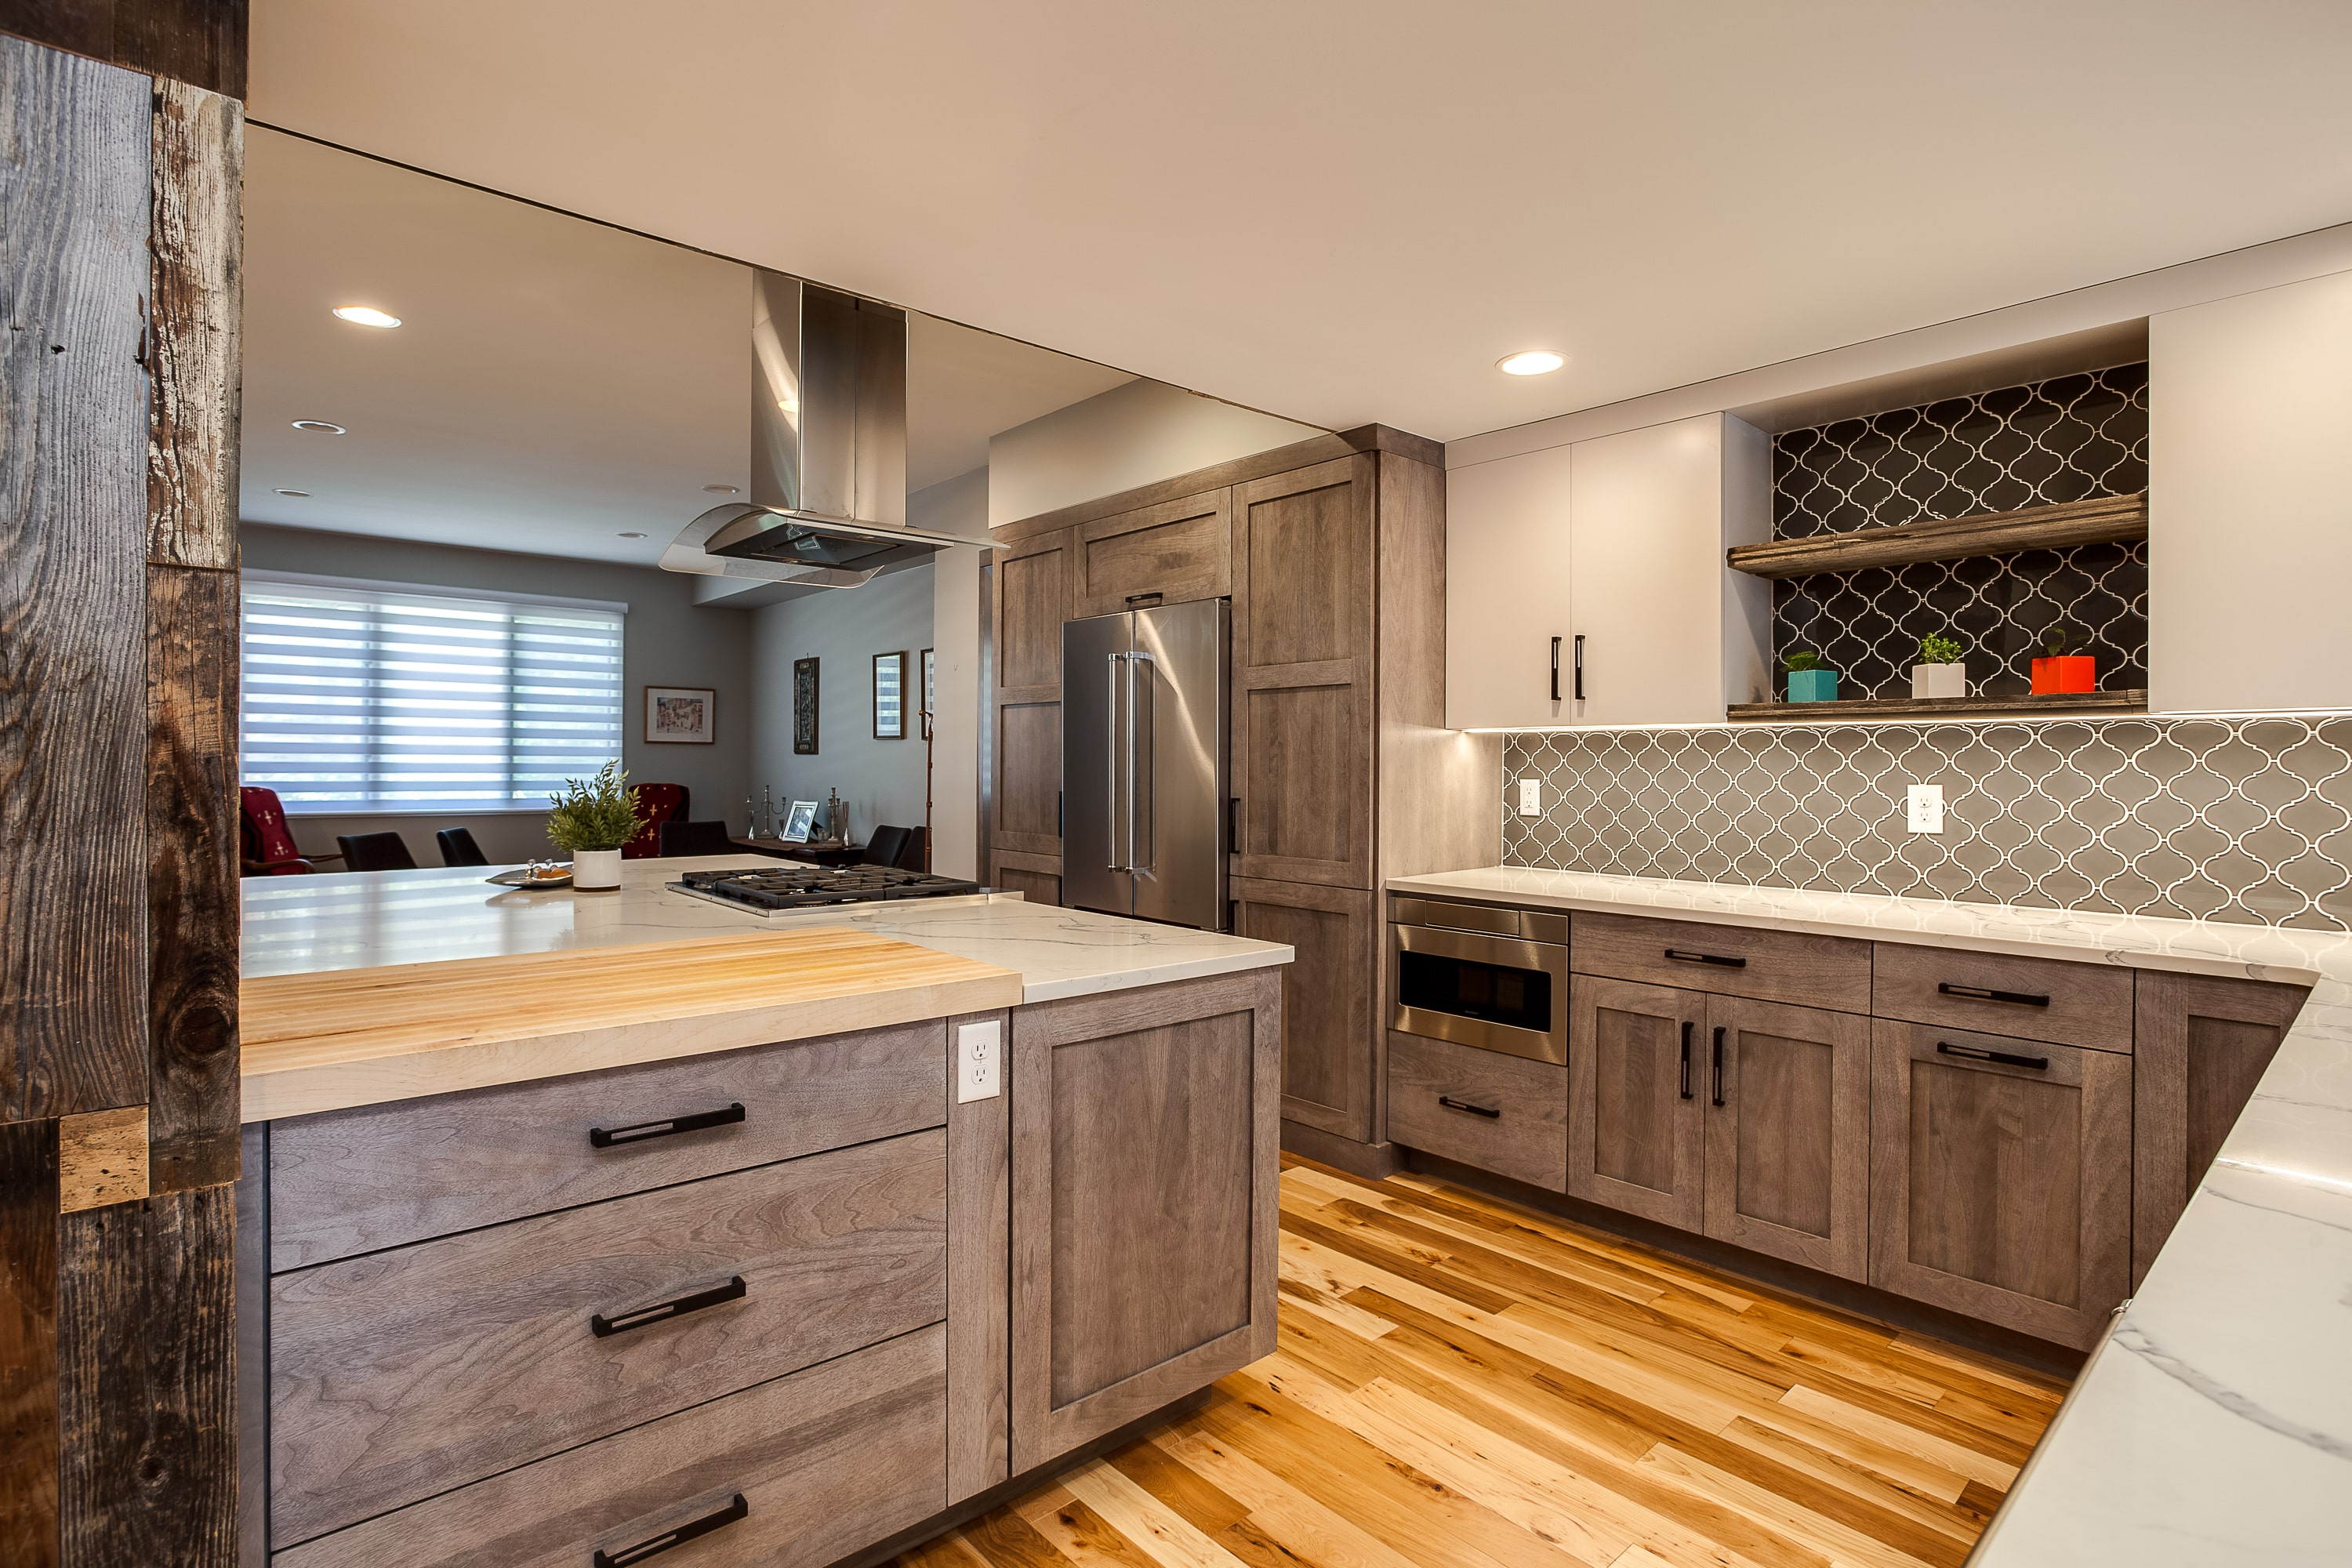 How To Choose A Wood For Your Cabinets Jm Kitchen And Bath